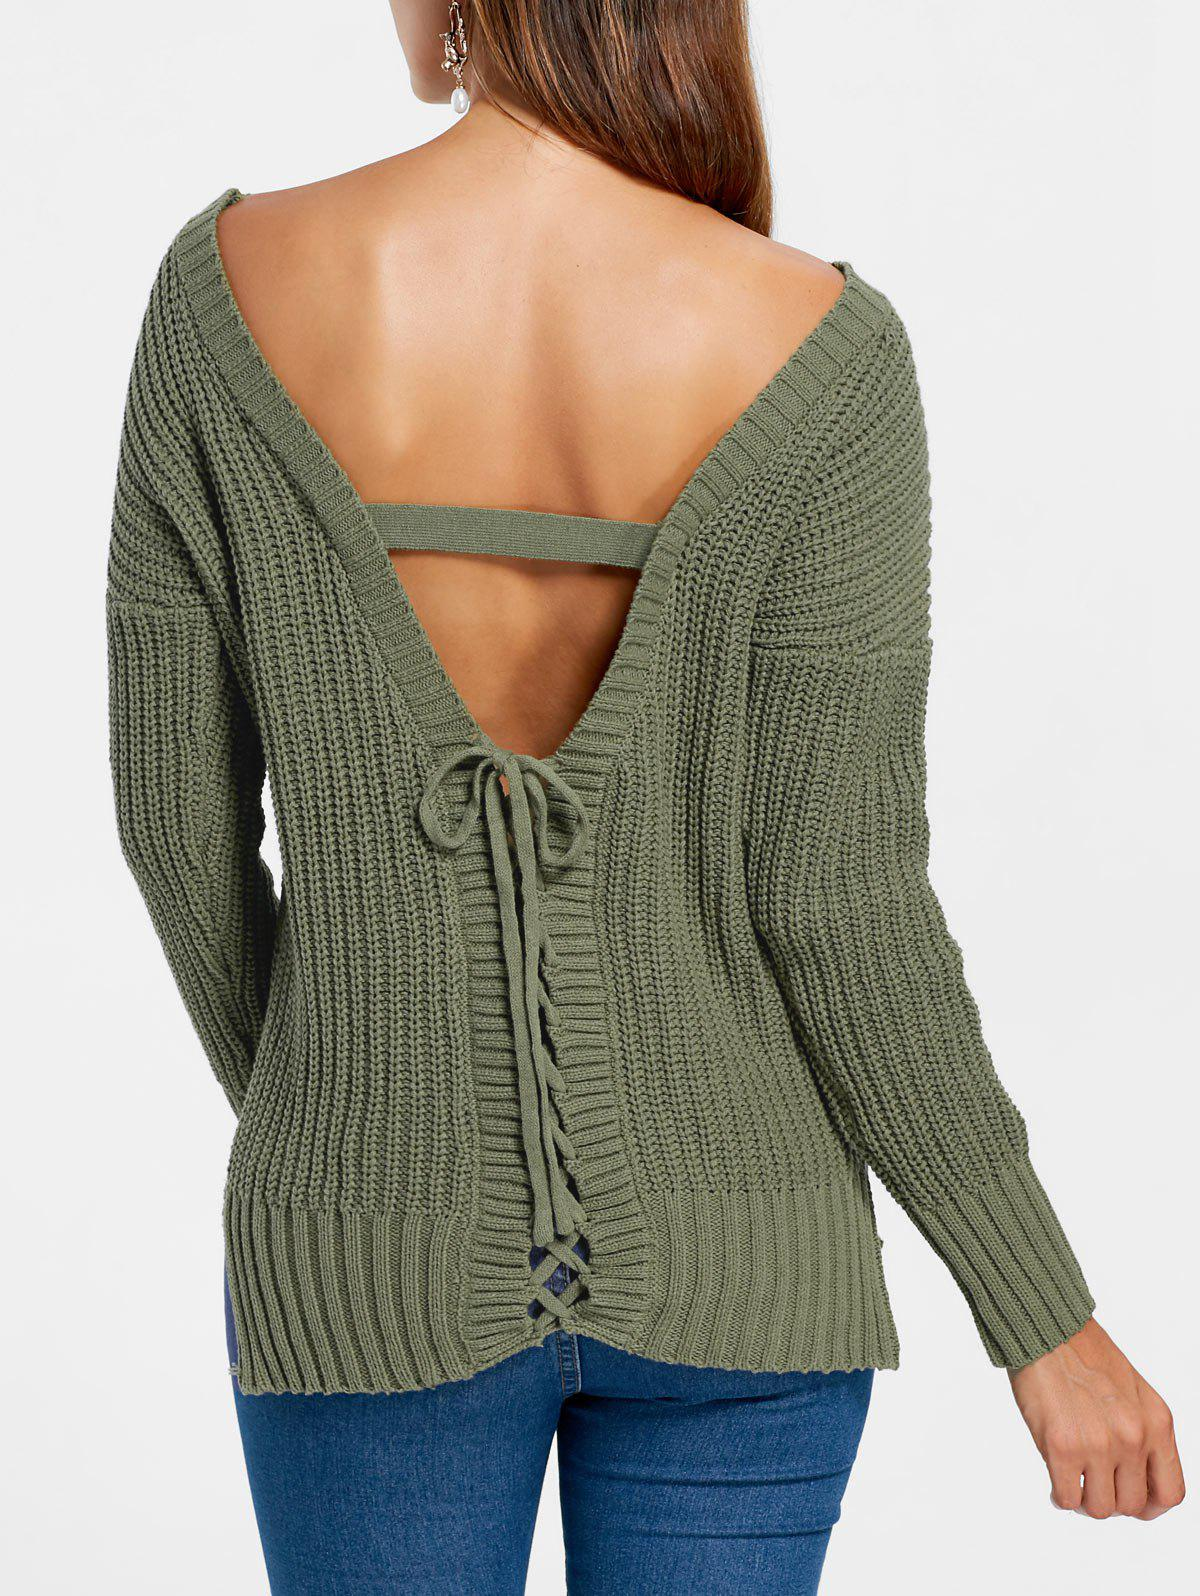 Cozy cardigans at affordable prices. Shop new styles of cheap sweaters, cardigans, and blazers up to 70% off retail prices. Available in womens and juniors sizes.